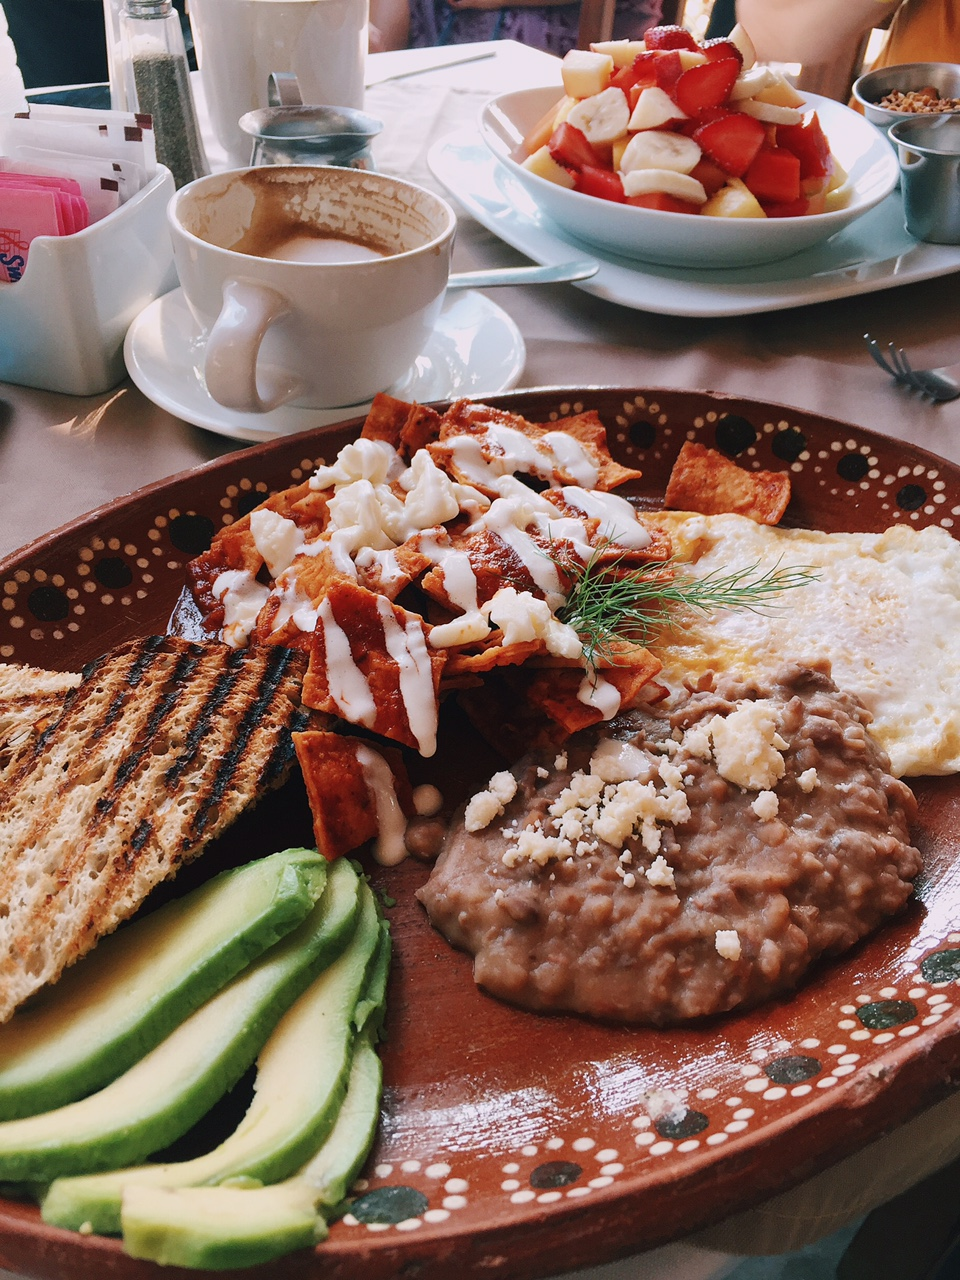 Look at this food!! For real, this was the freshest avocado, fruit and tastiest chilaquiles ever! So this was how I started off the wedding day, with a big yummy Mexican breakfast...again, eat local! slap your own hand if you try to order a burger or anything remotely familiar